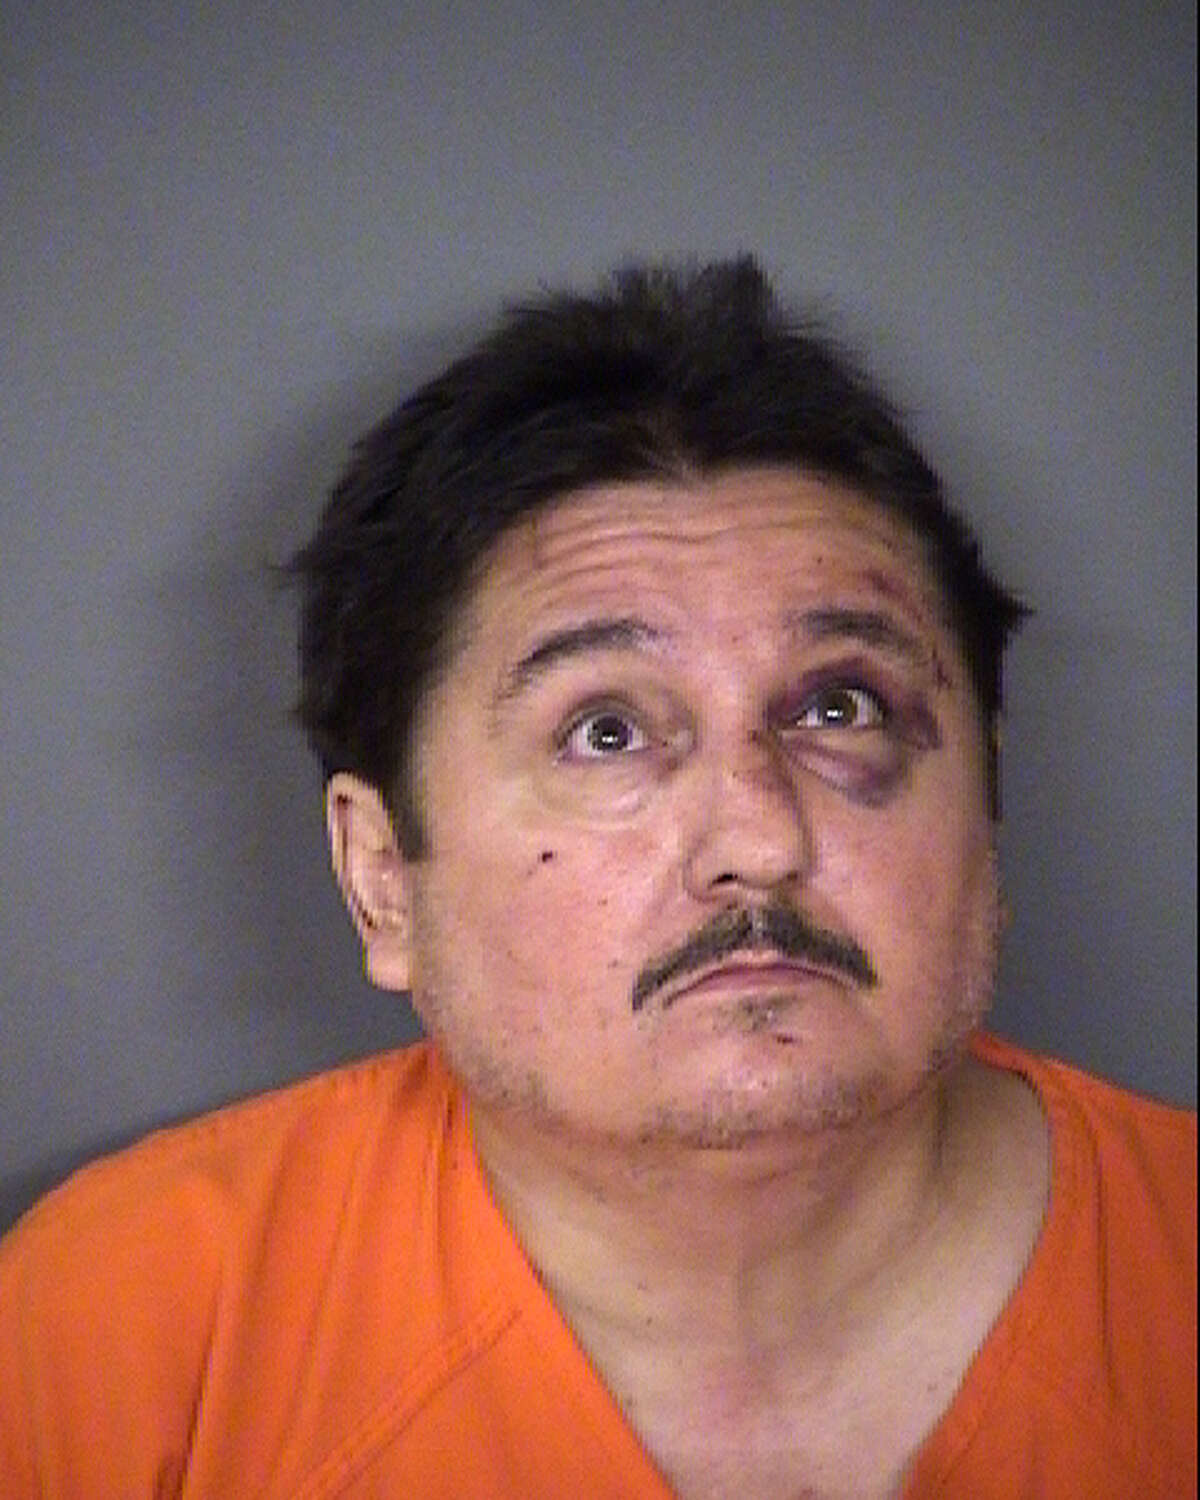 Rafael Lopez Jr.Charge: Driving while intoxicated, 3rd or moreDate: Nov. 10, 2016